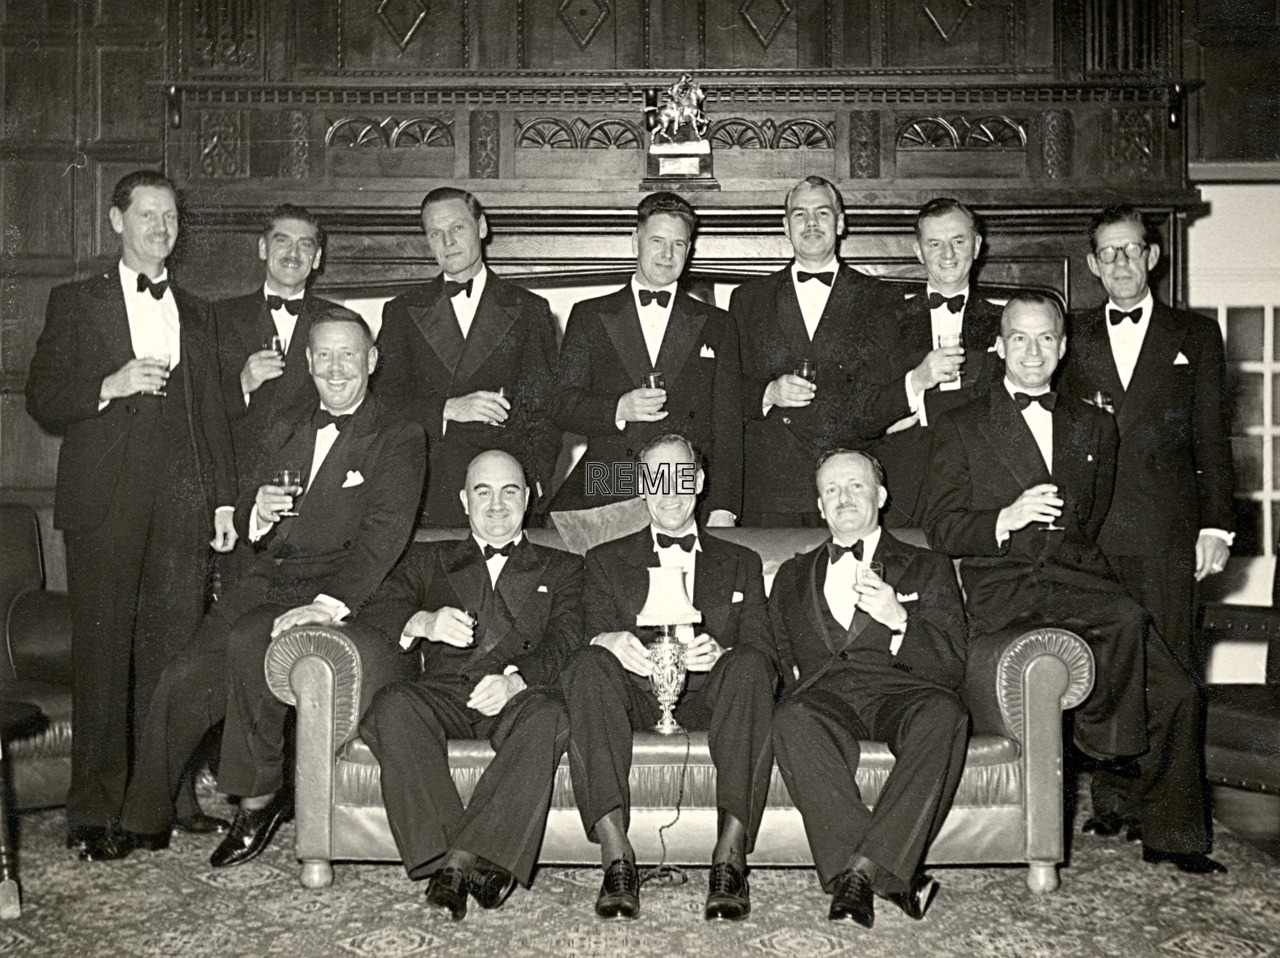 Reunion of the 19th Ordnance Mechanical Engineer (OME) Course, 29 October 1960